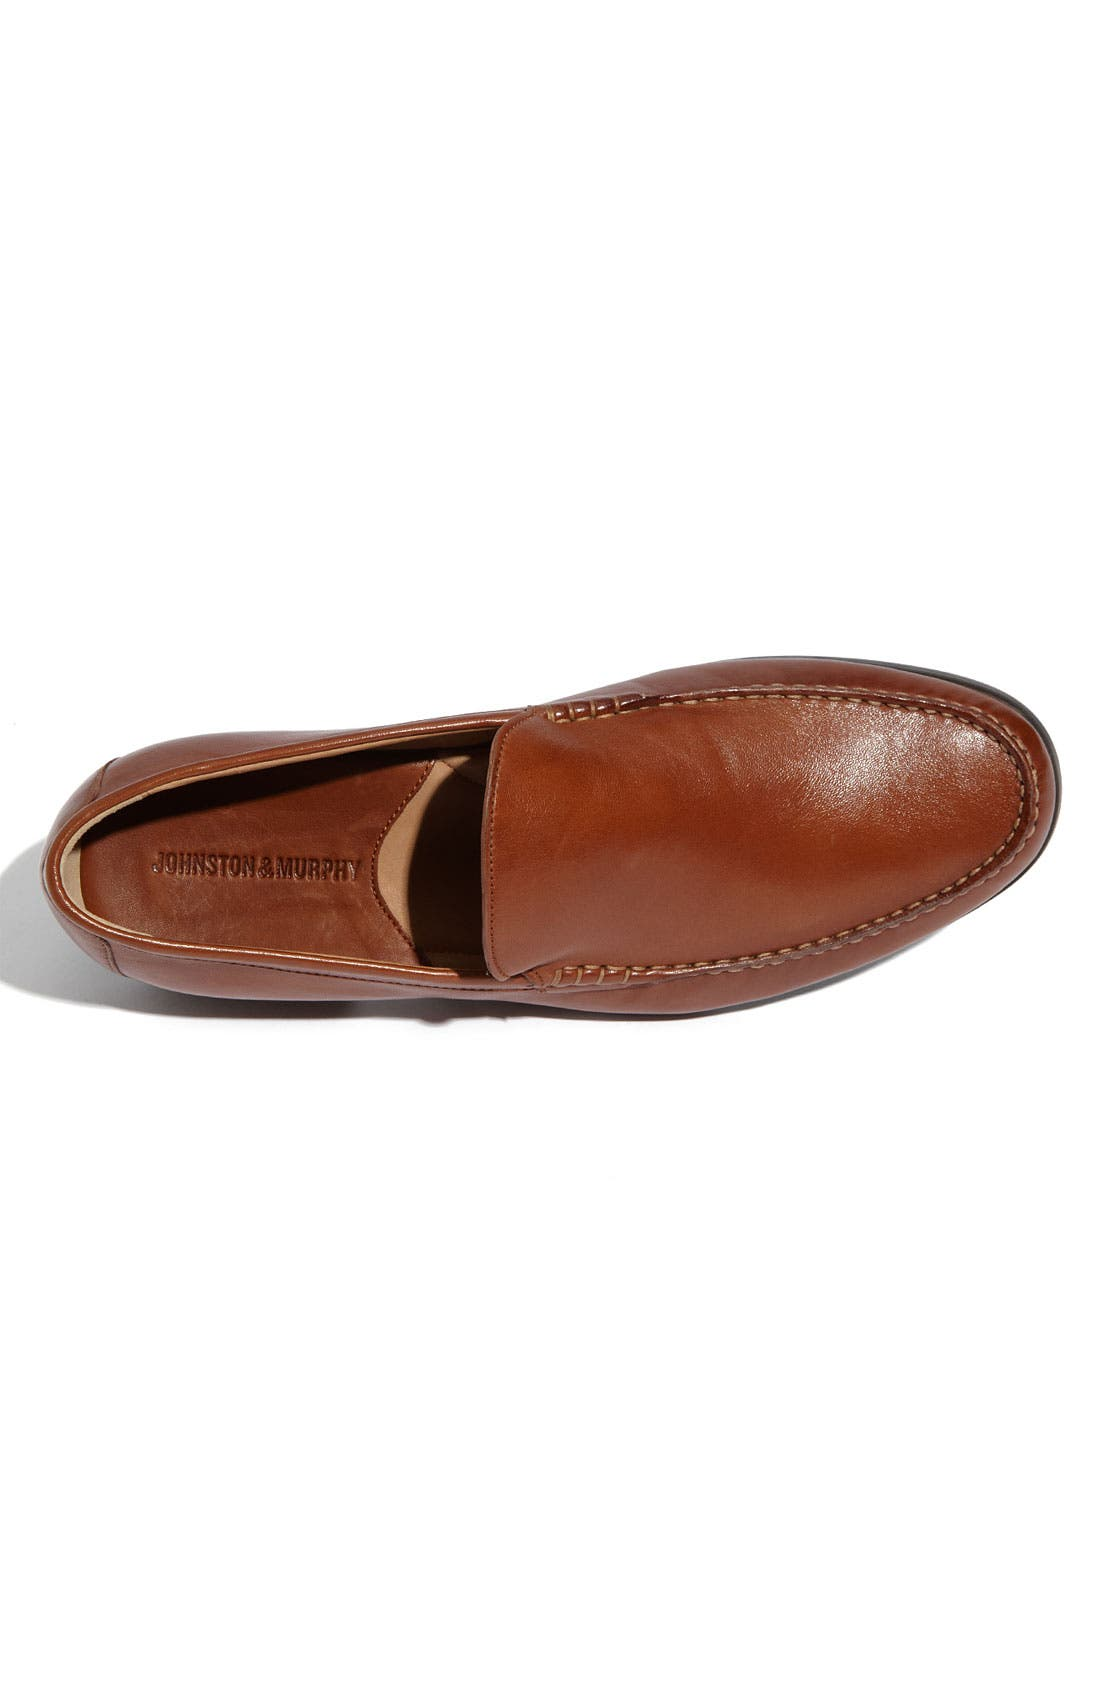 JOHNSTON & MURPHY,                             'Creswell' Venetian Slip-On,                             Alternate thumbnail 3, color,                             COGNAC